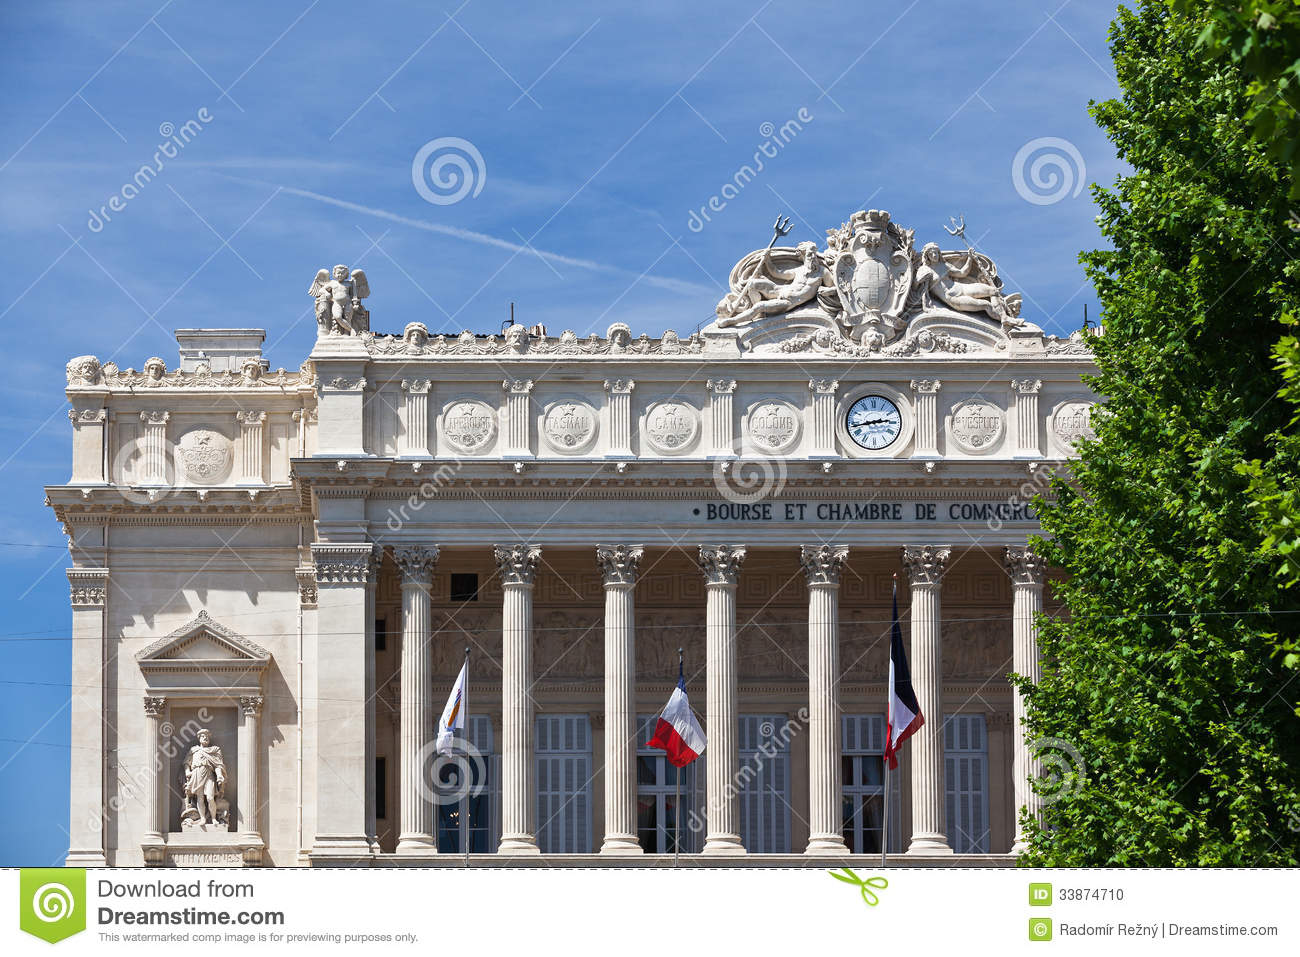 bourse et chambre de commerce in marseille stock photo